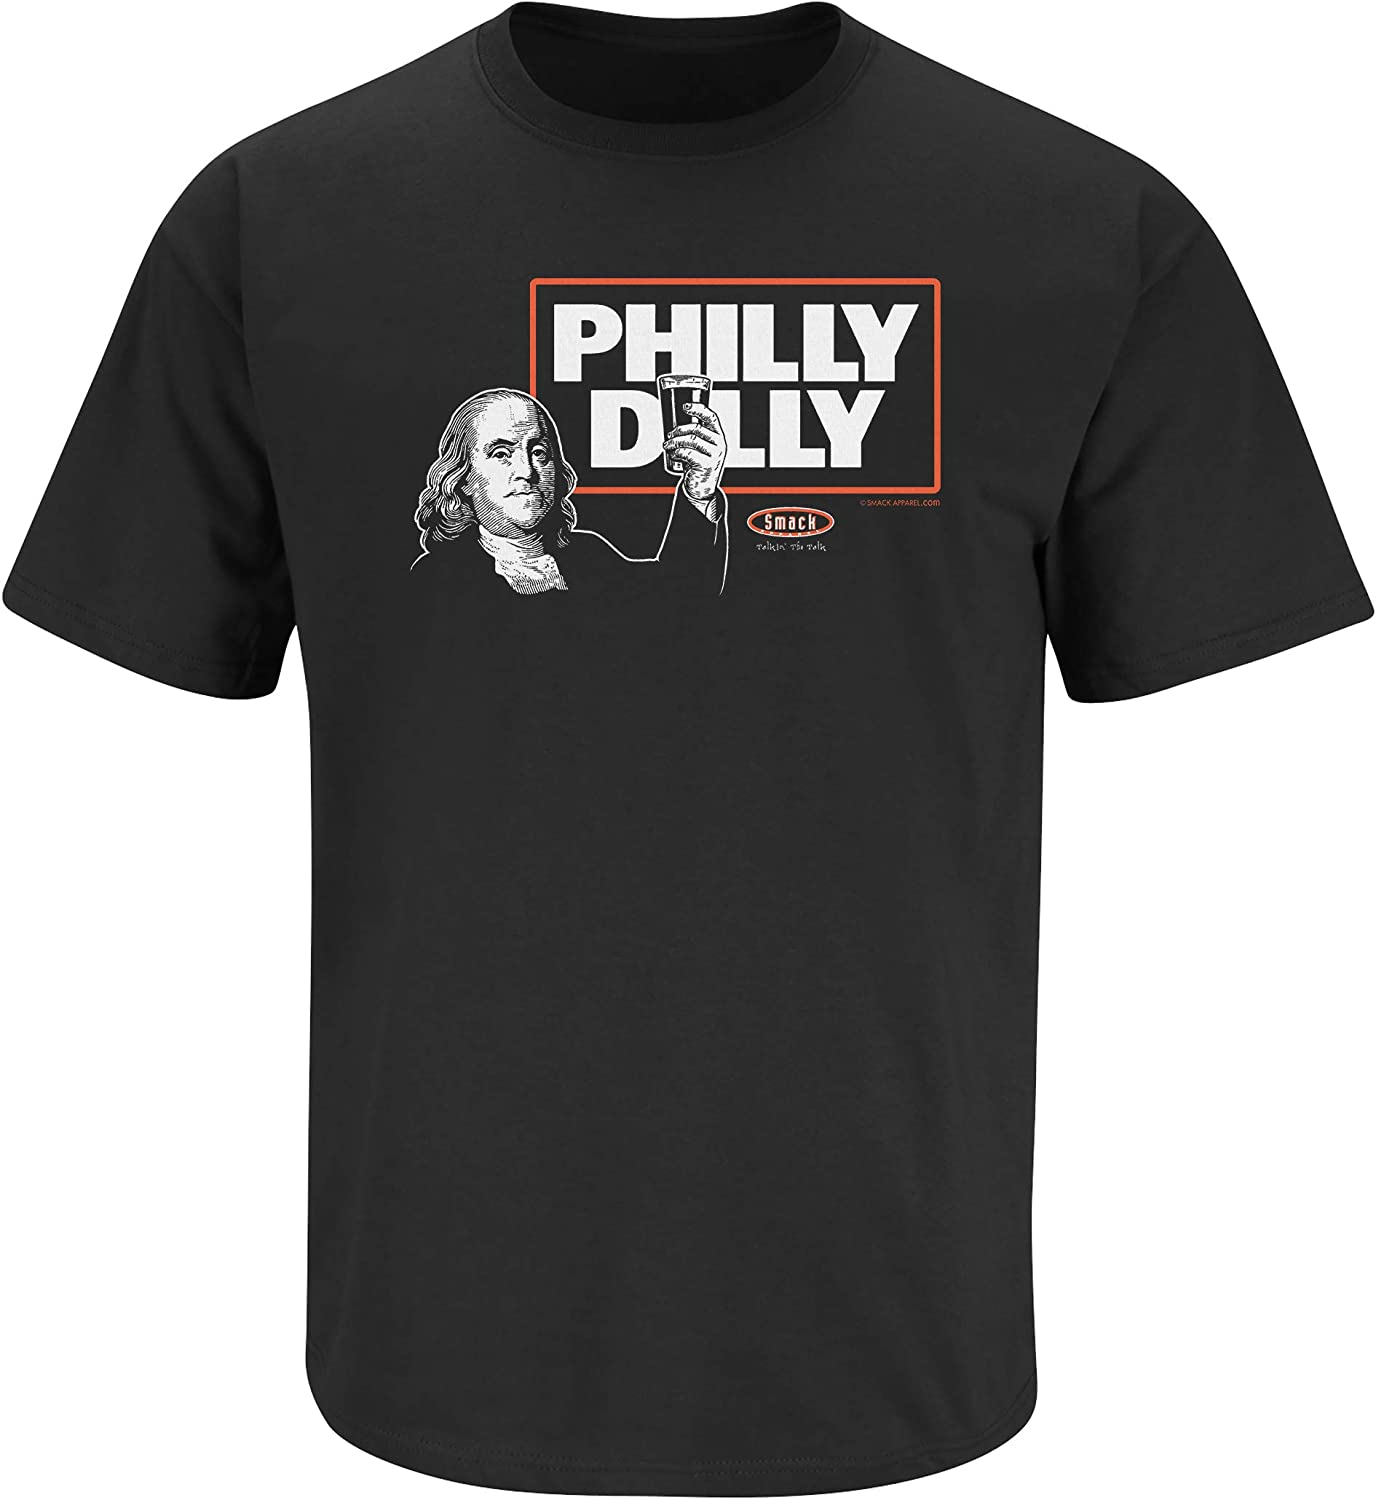 Sm-2X Philly Dilly Black Ladies T-Shirt Smack Apparel Philadelphia Football Fans